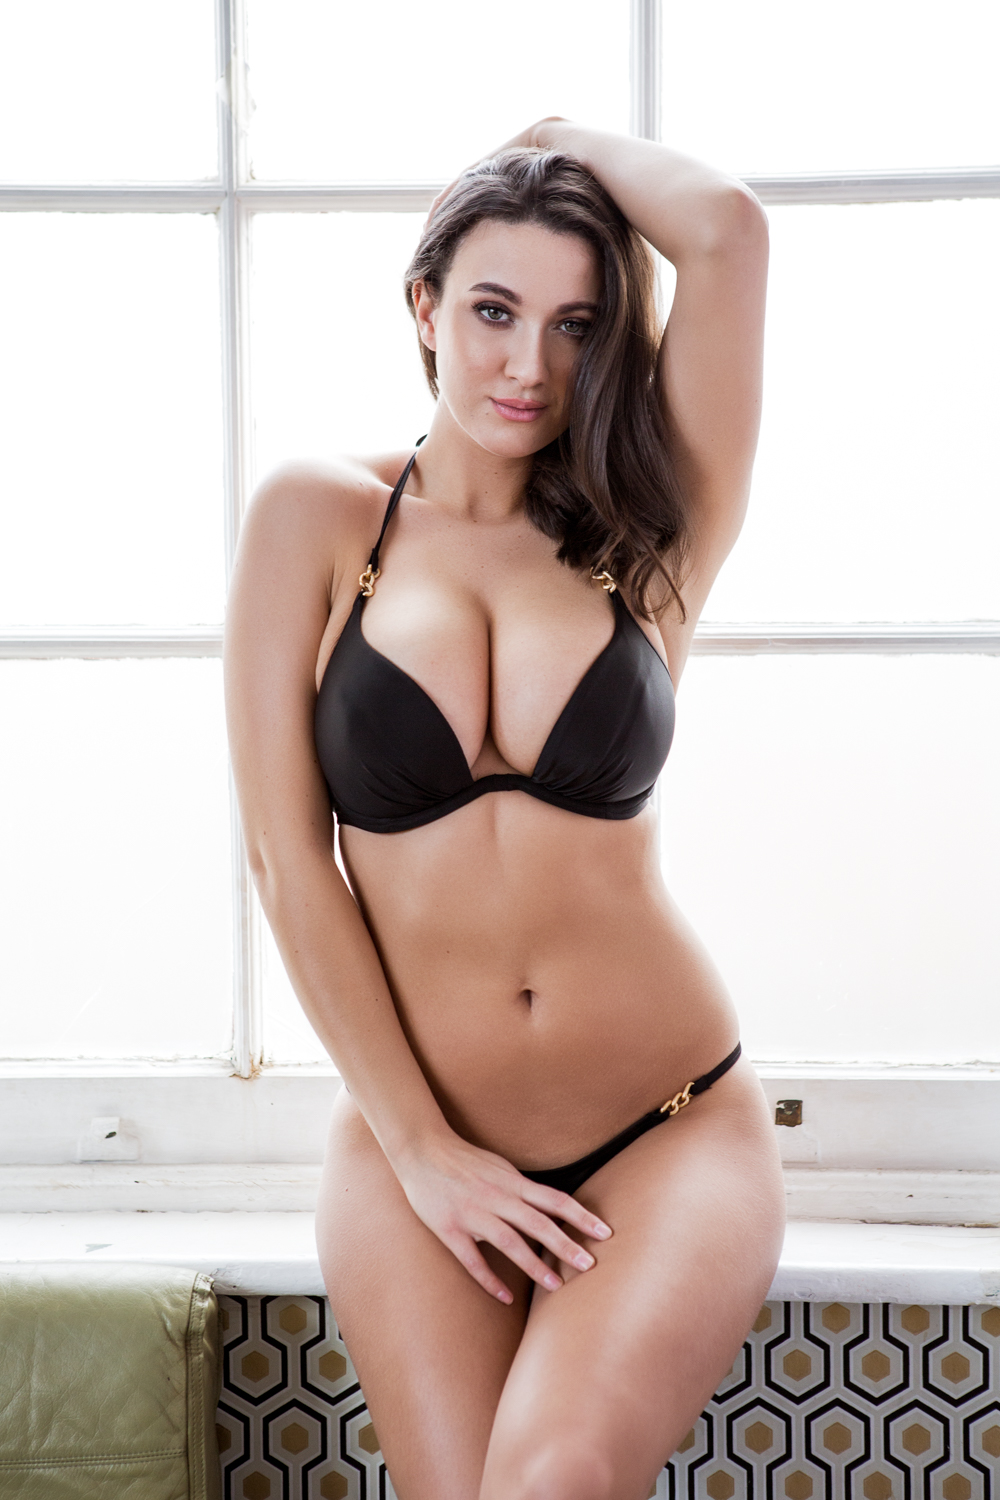 Joey Fisher-20170318-01 by Sam Riley